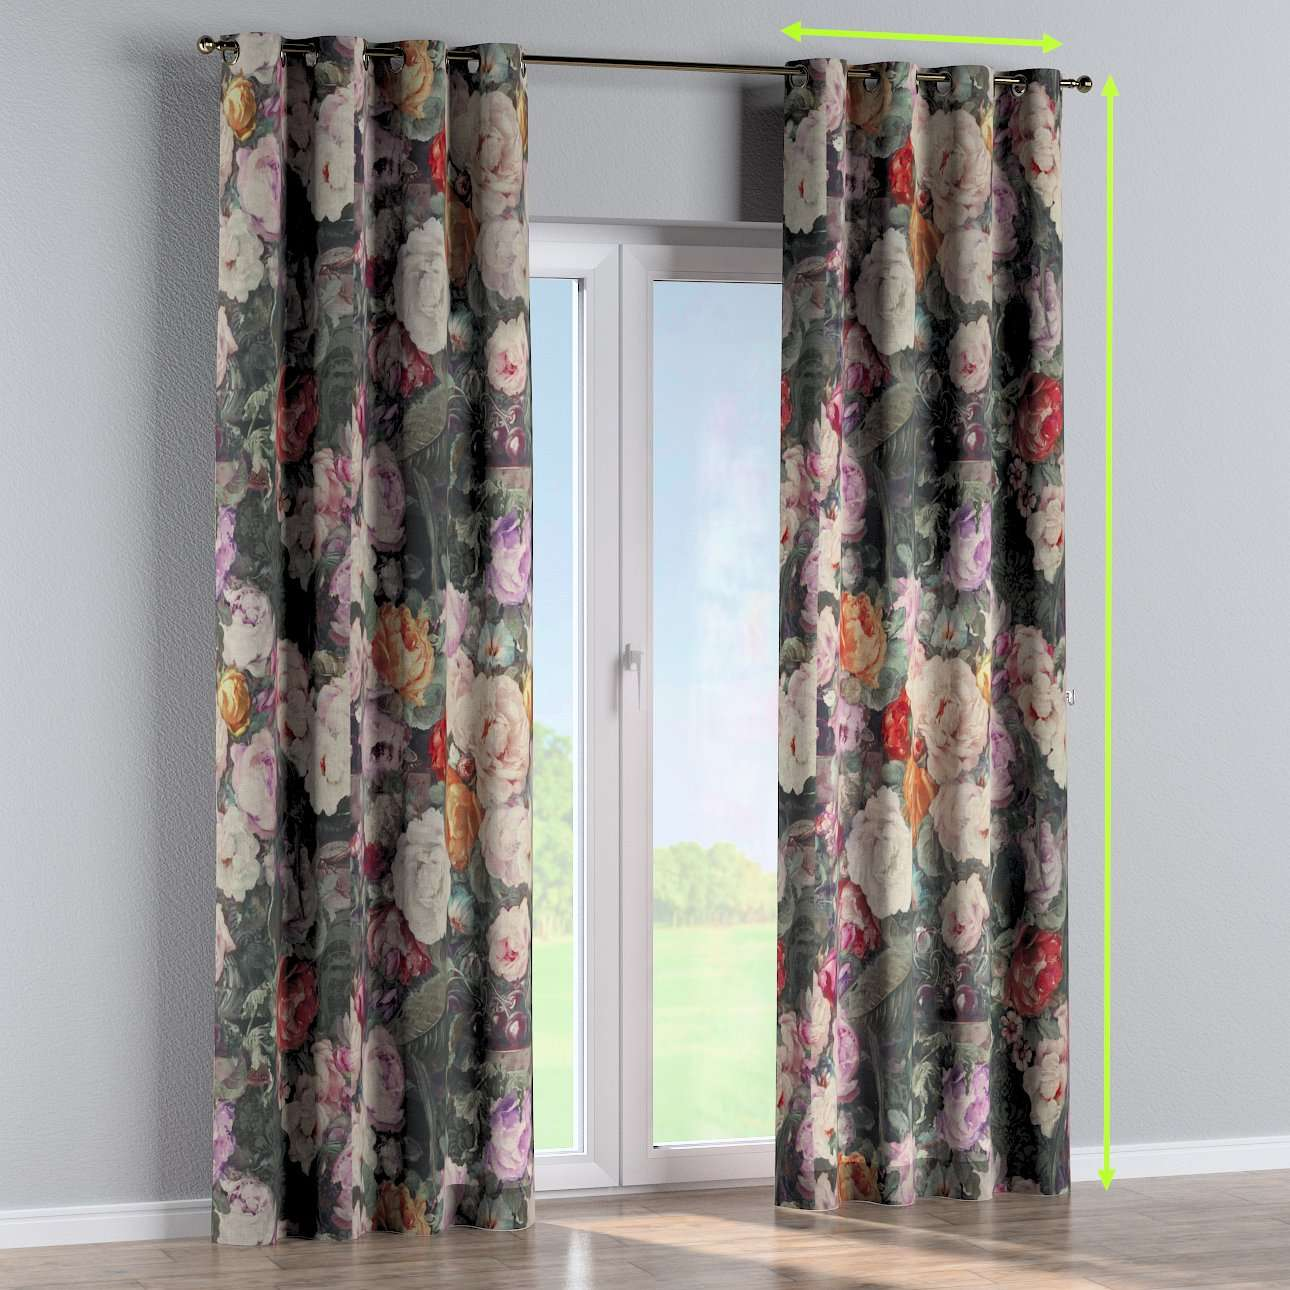 Eyelet curtains in collection Linen, fabric: 142-26